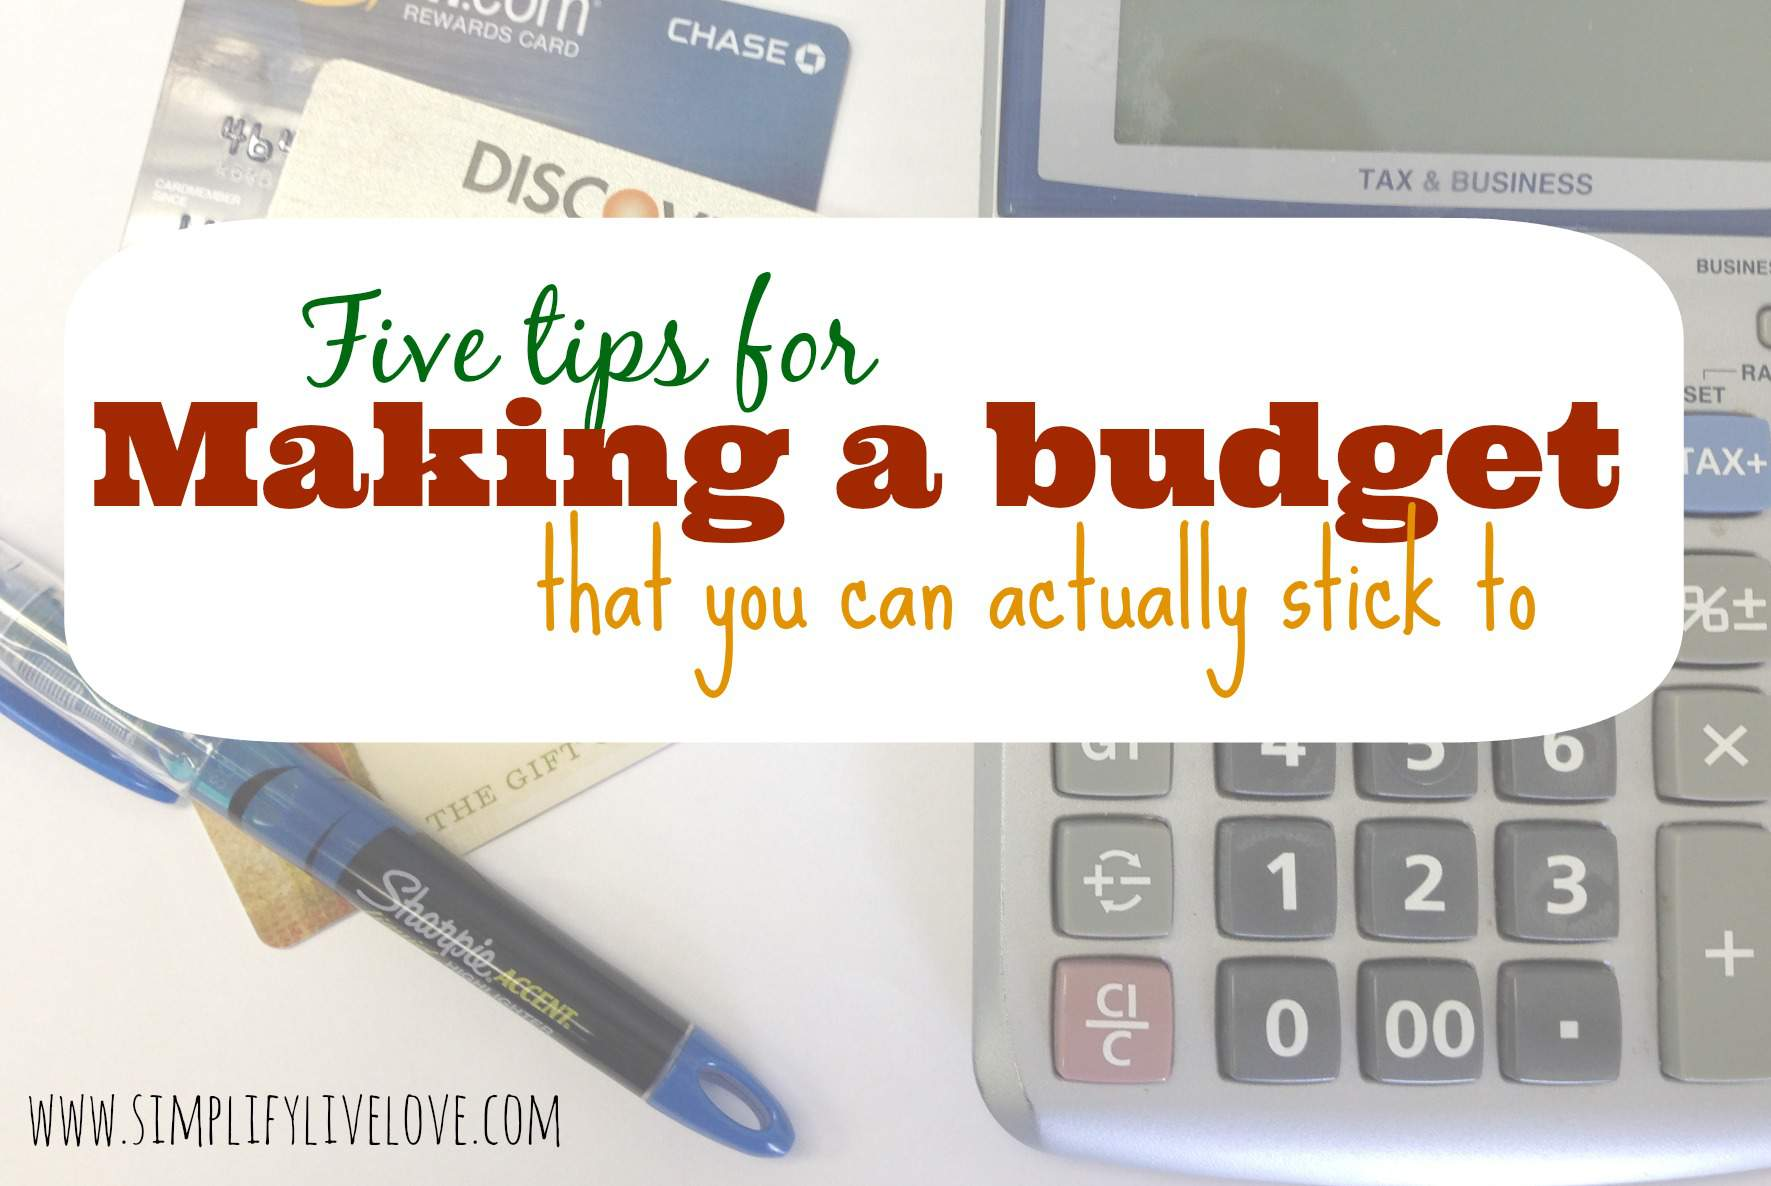 5 Tips for Making a Budget You can Actually Stick To